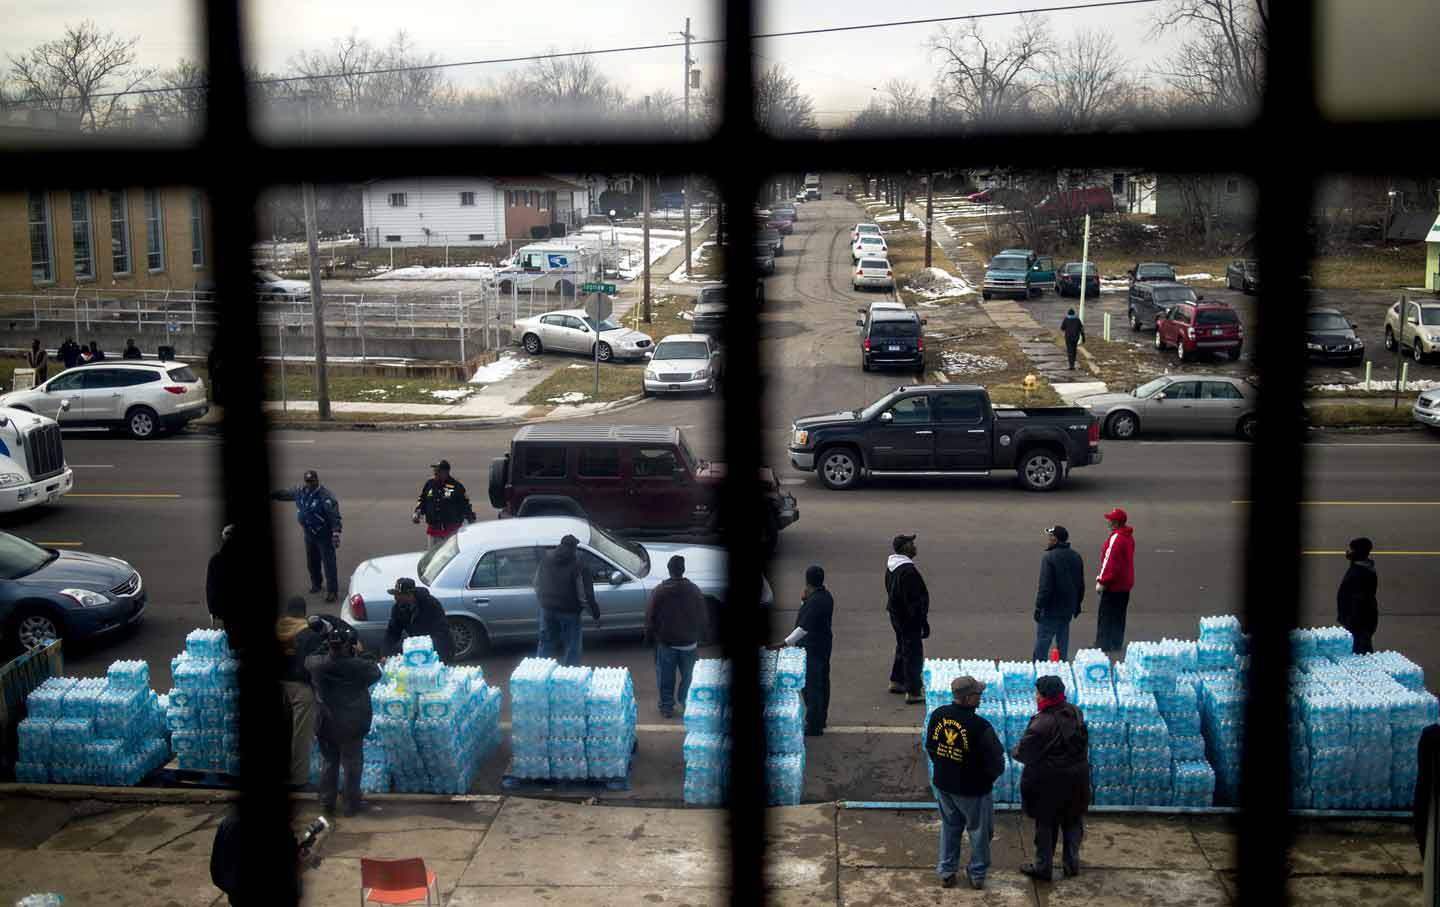 Flint bottled water